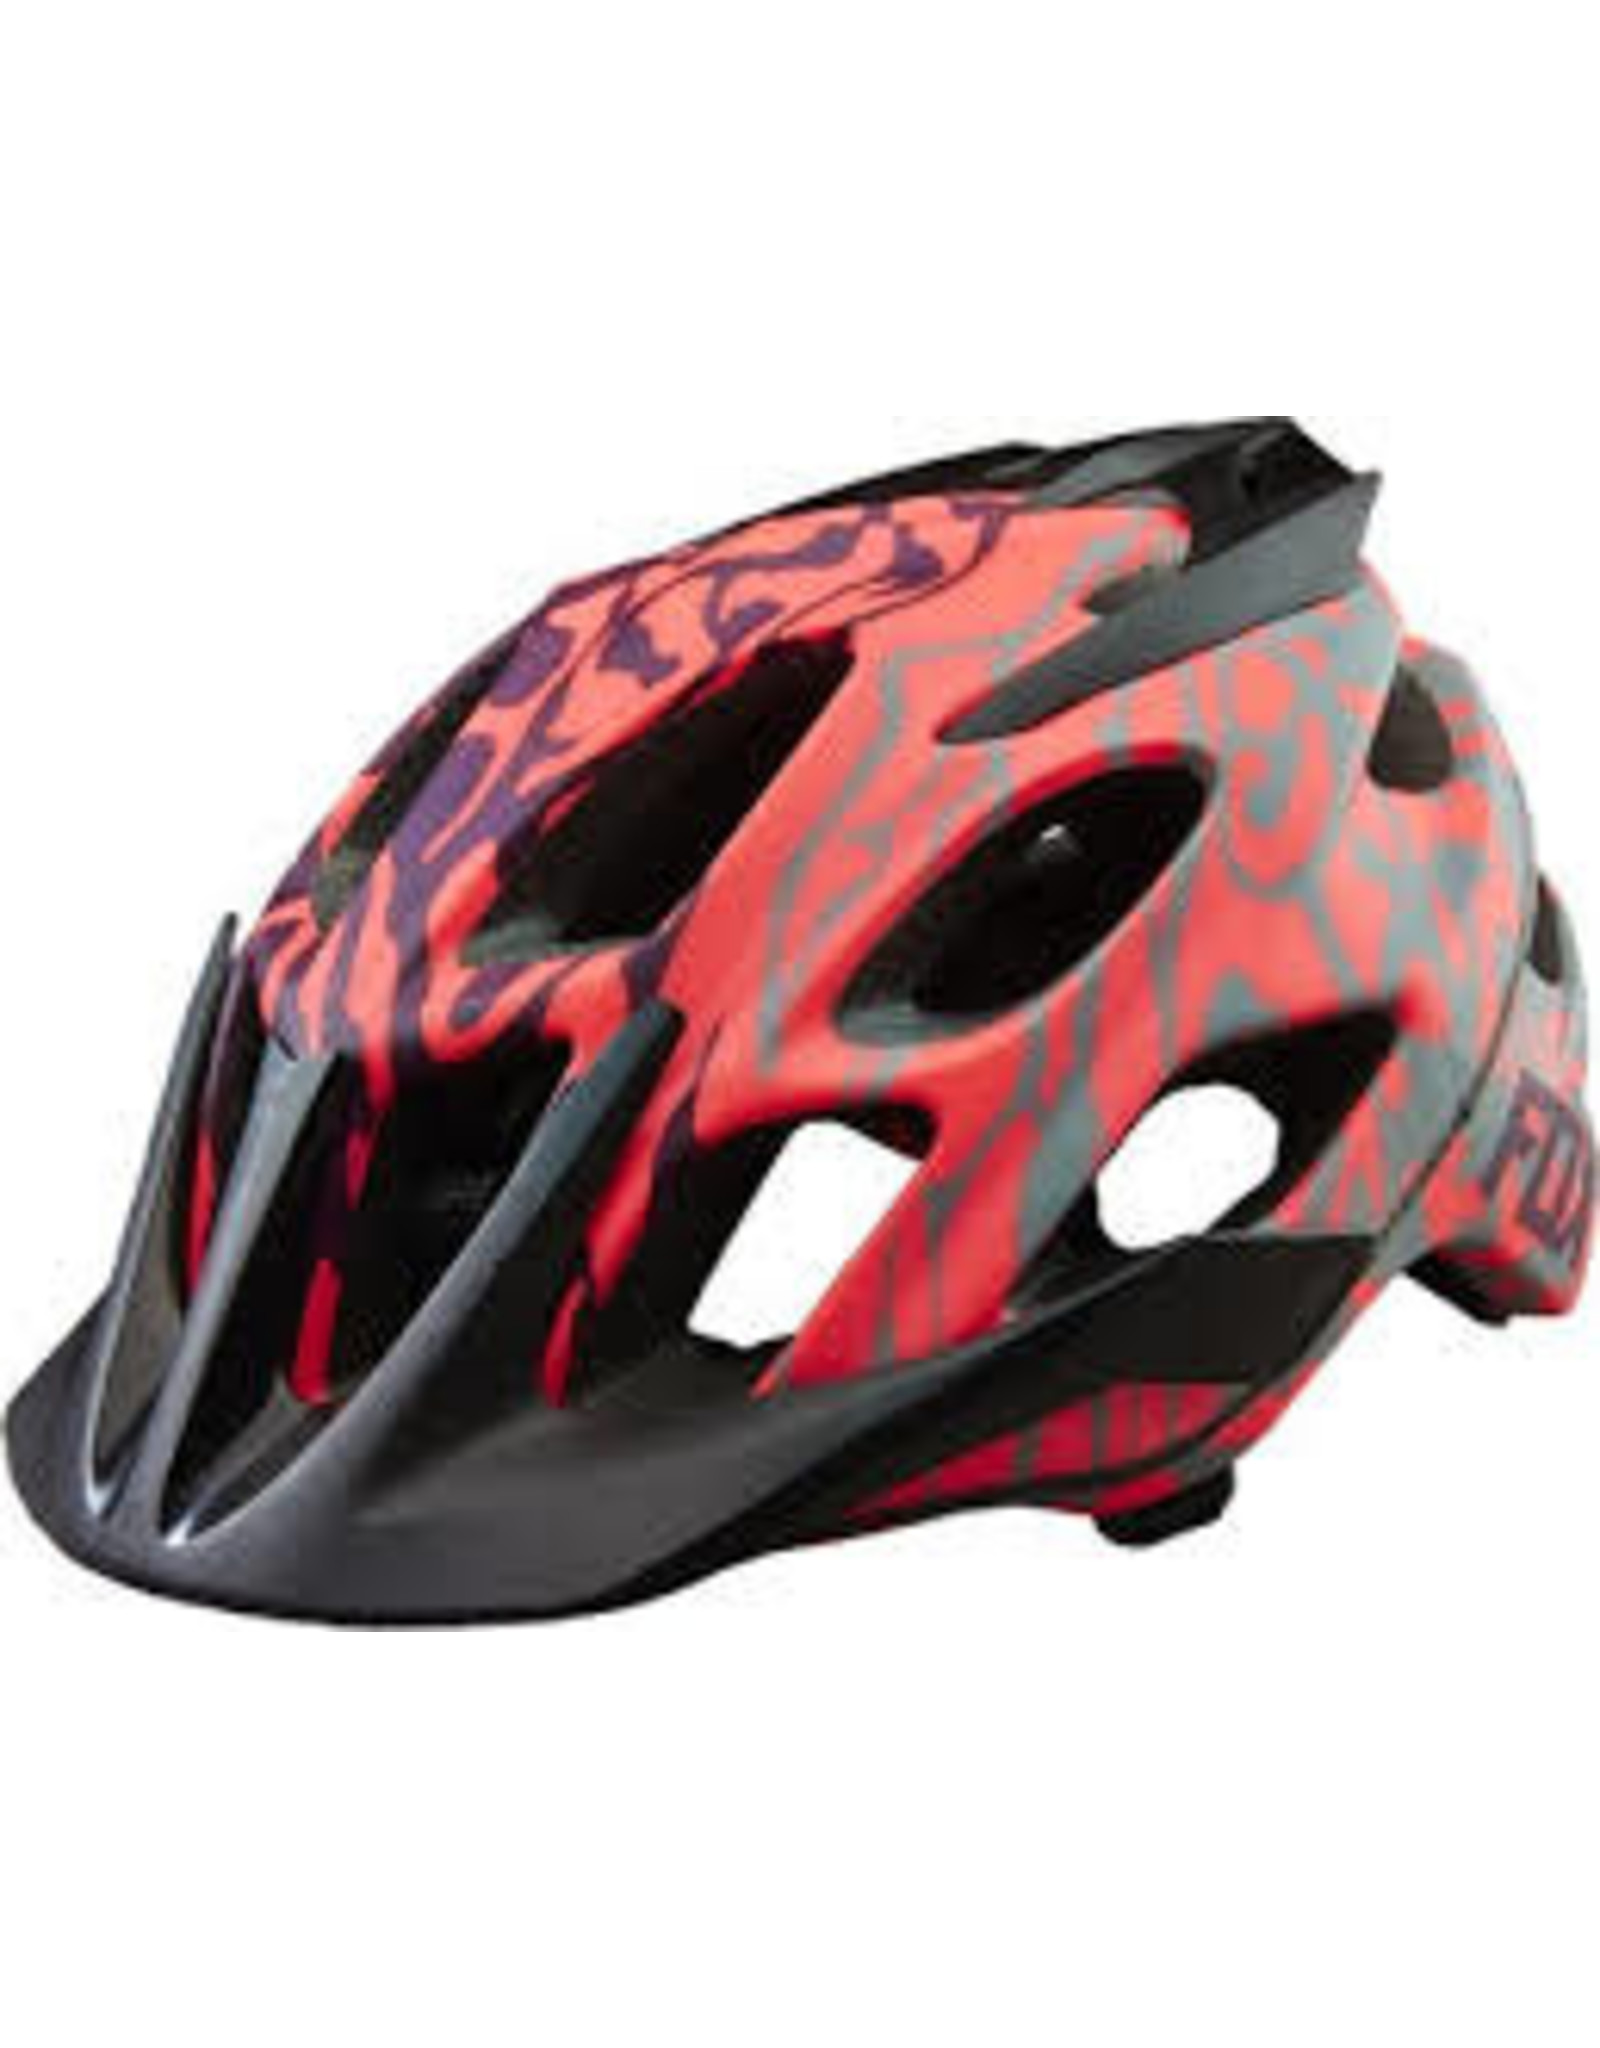 WOMENS FLUX HELMET [PNK] L/XL